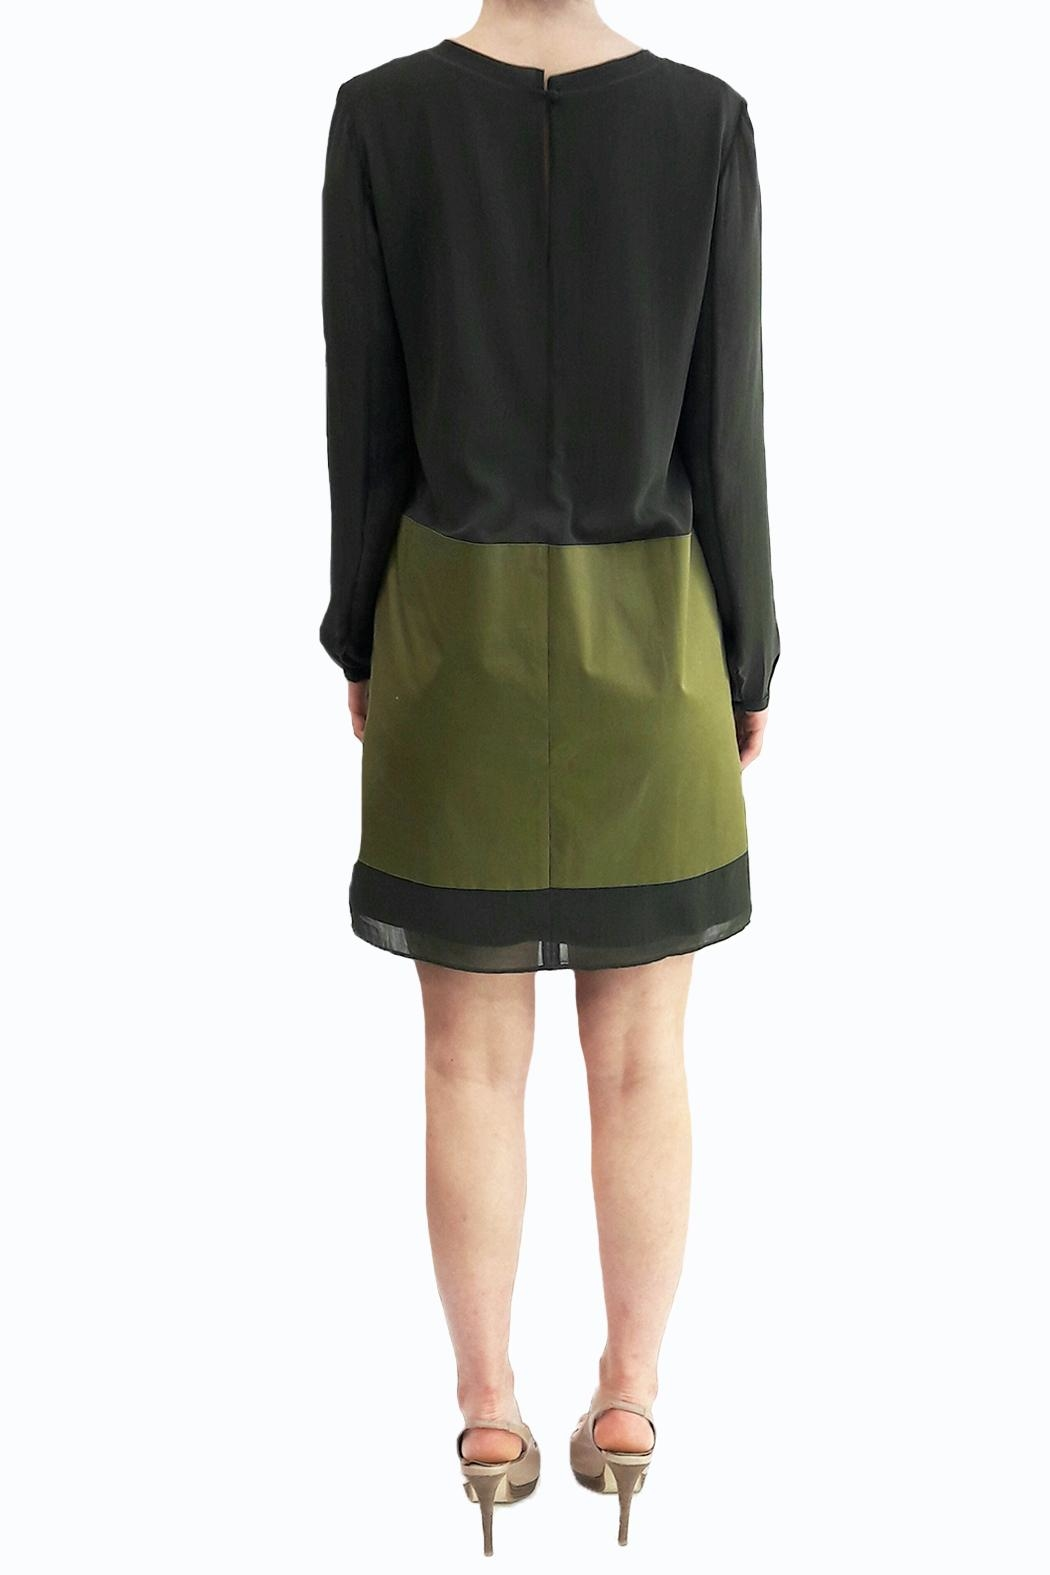 Sonia by Sonia Rykiel Khaki Dress - Side Cropped Image